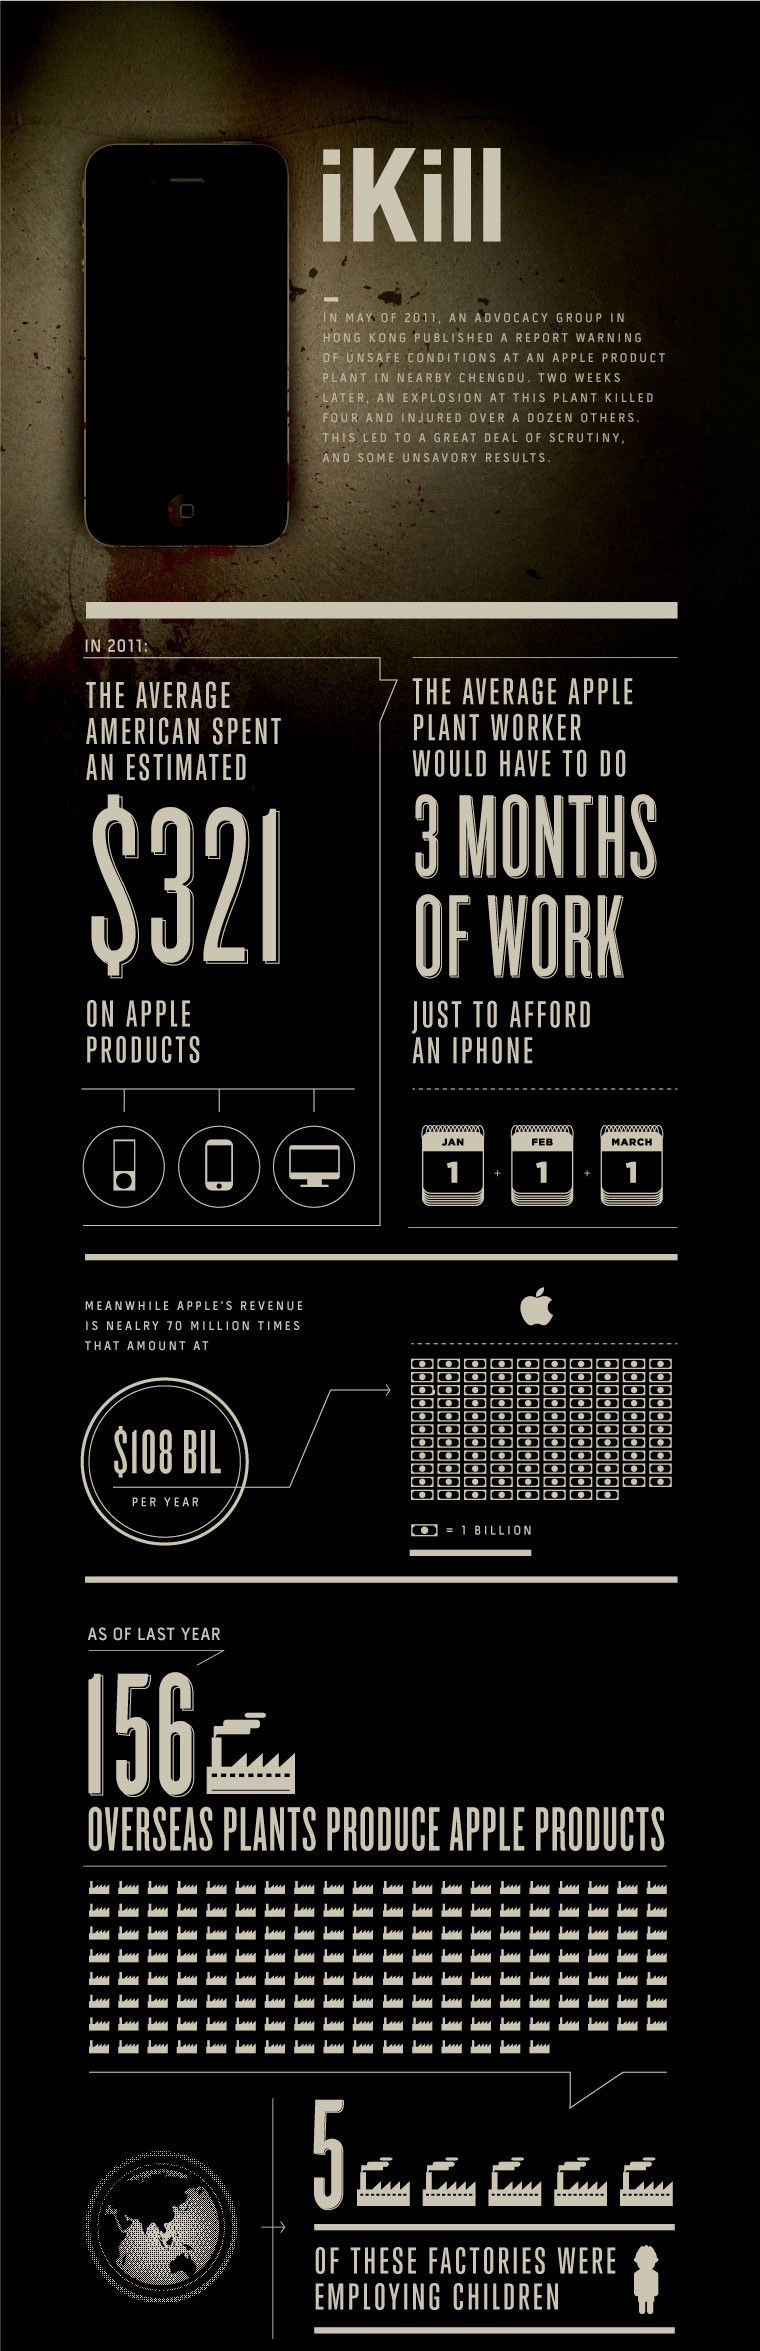 """""""iKill"""" Infographic Charts The Human Cost Of The iPhone"""